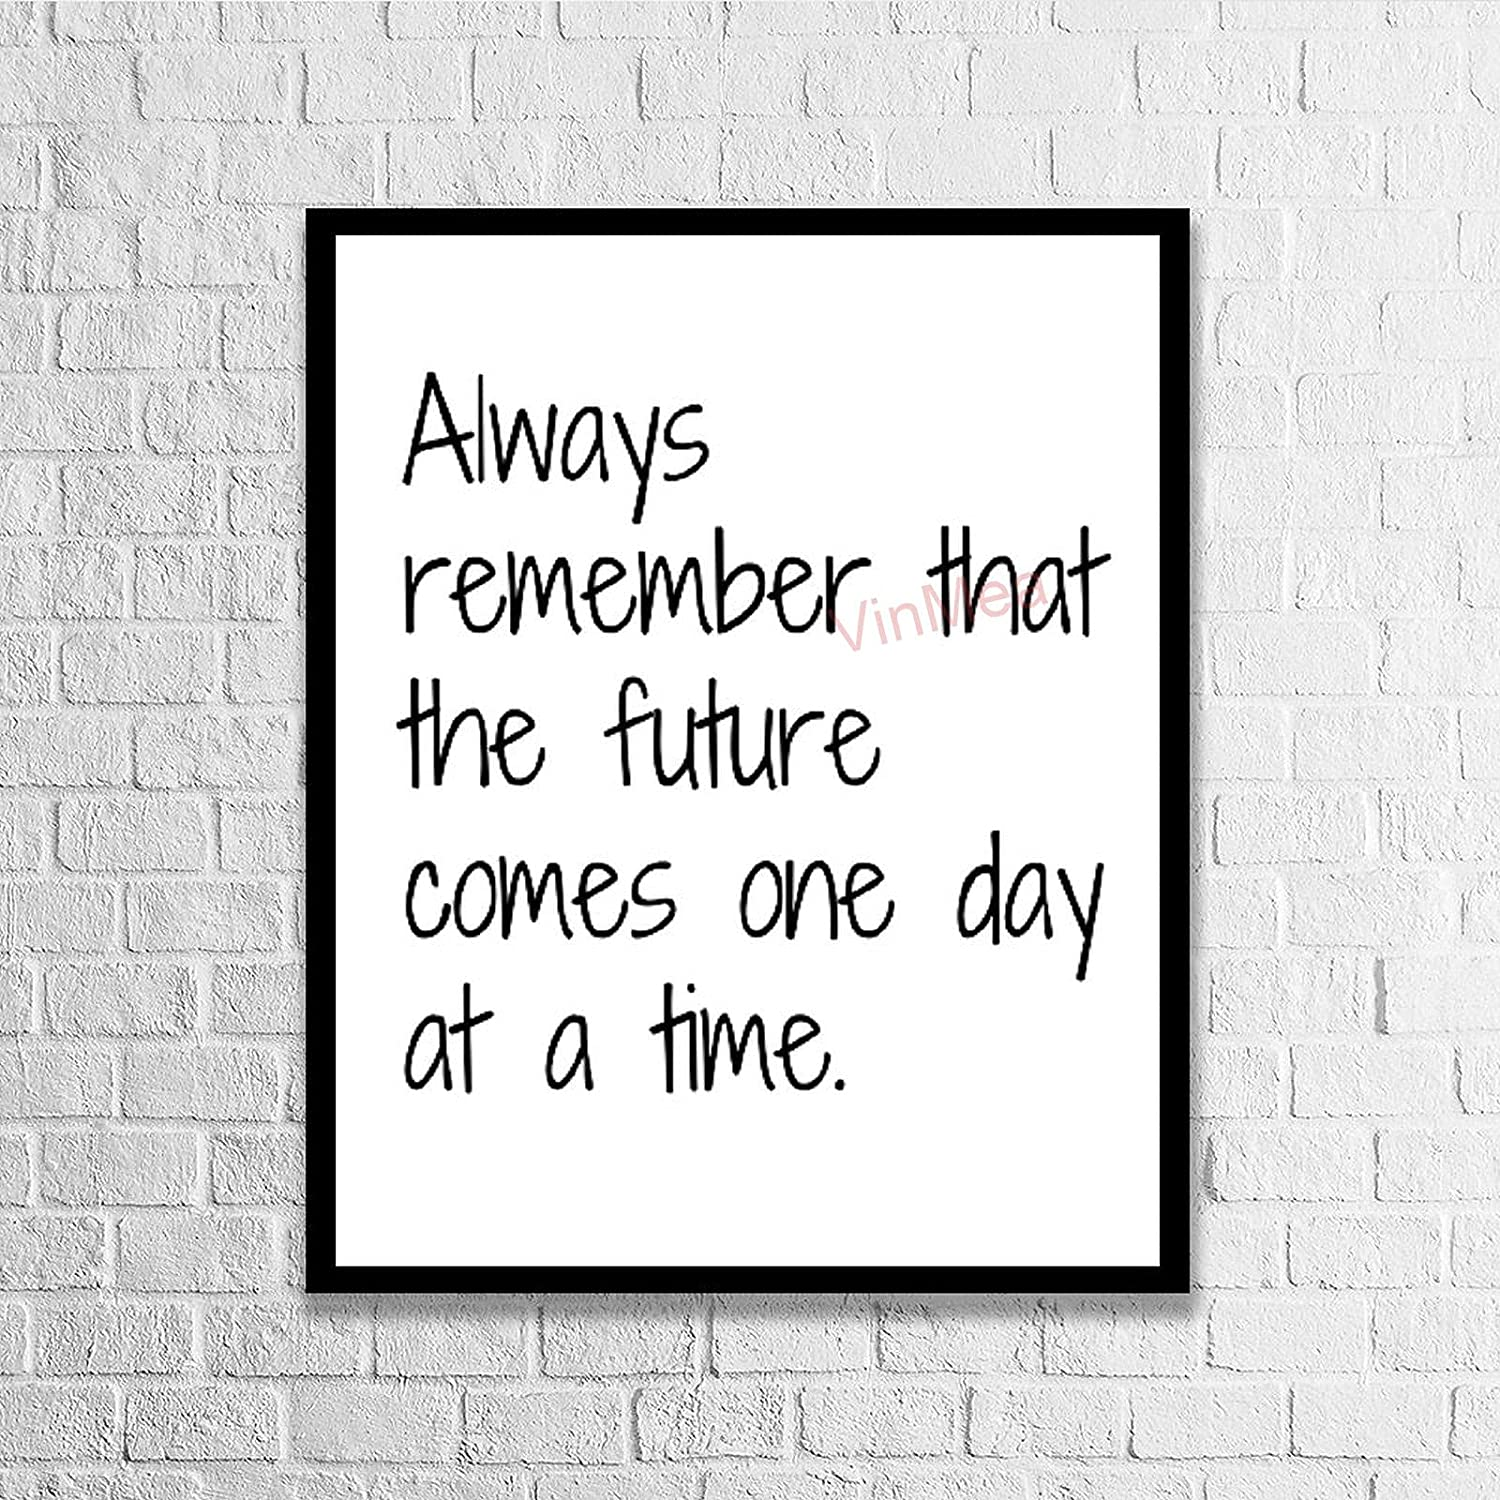 VinMea Framed Wood Sign Always Remember That The Future Comes One Day at A Time Farmhouse Wall Door Wooden Wall Hanging Art,Inspirational Wall Plaque 8